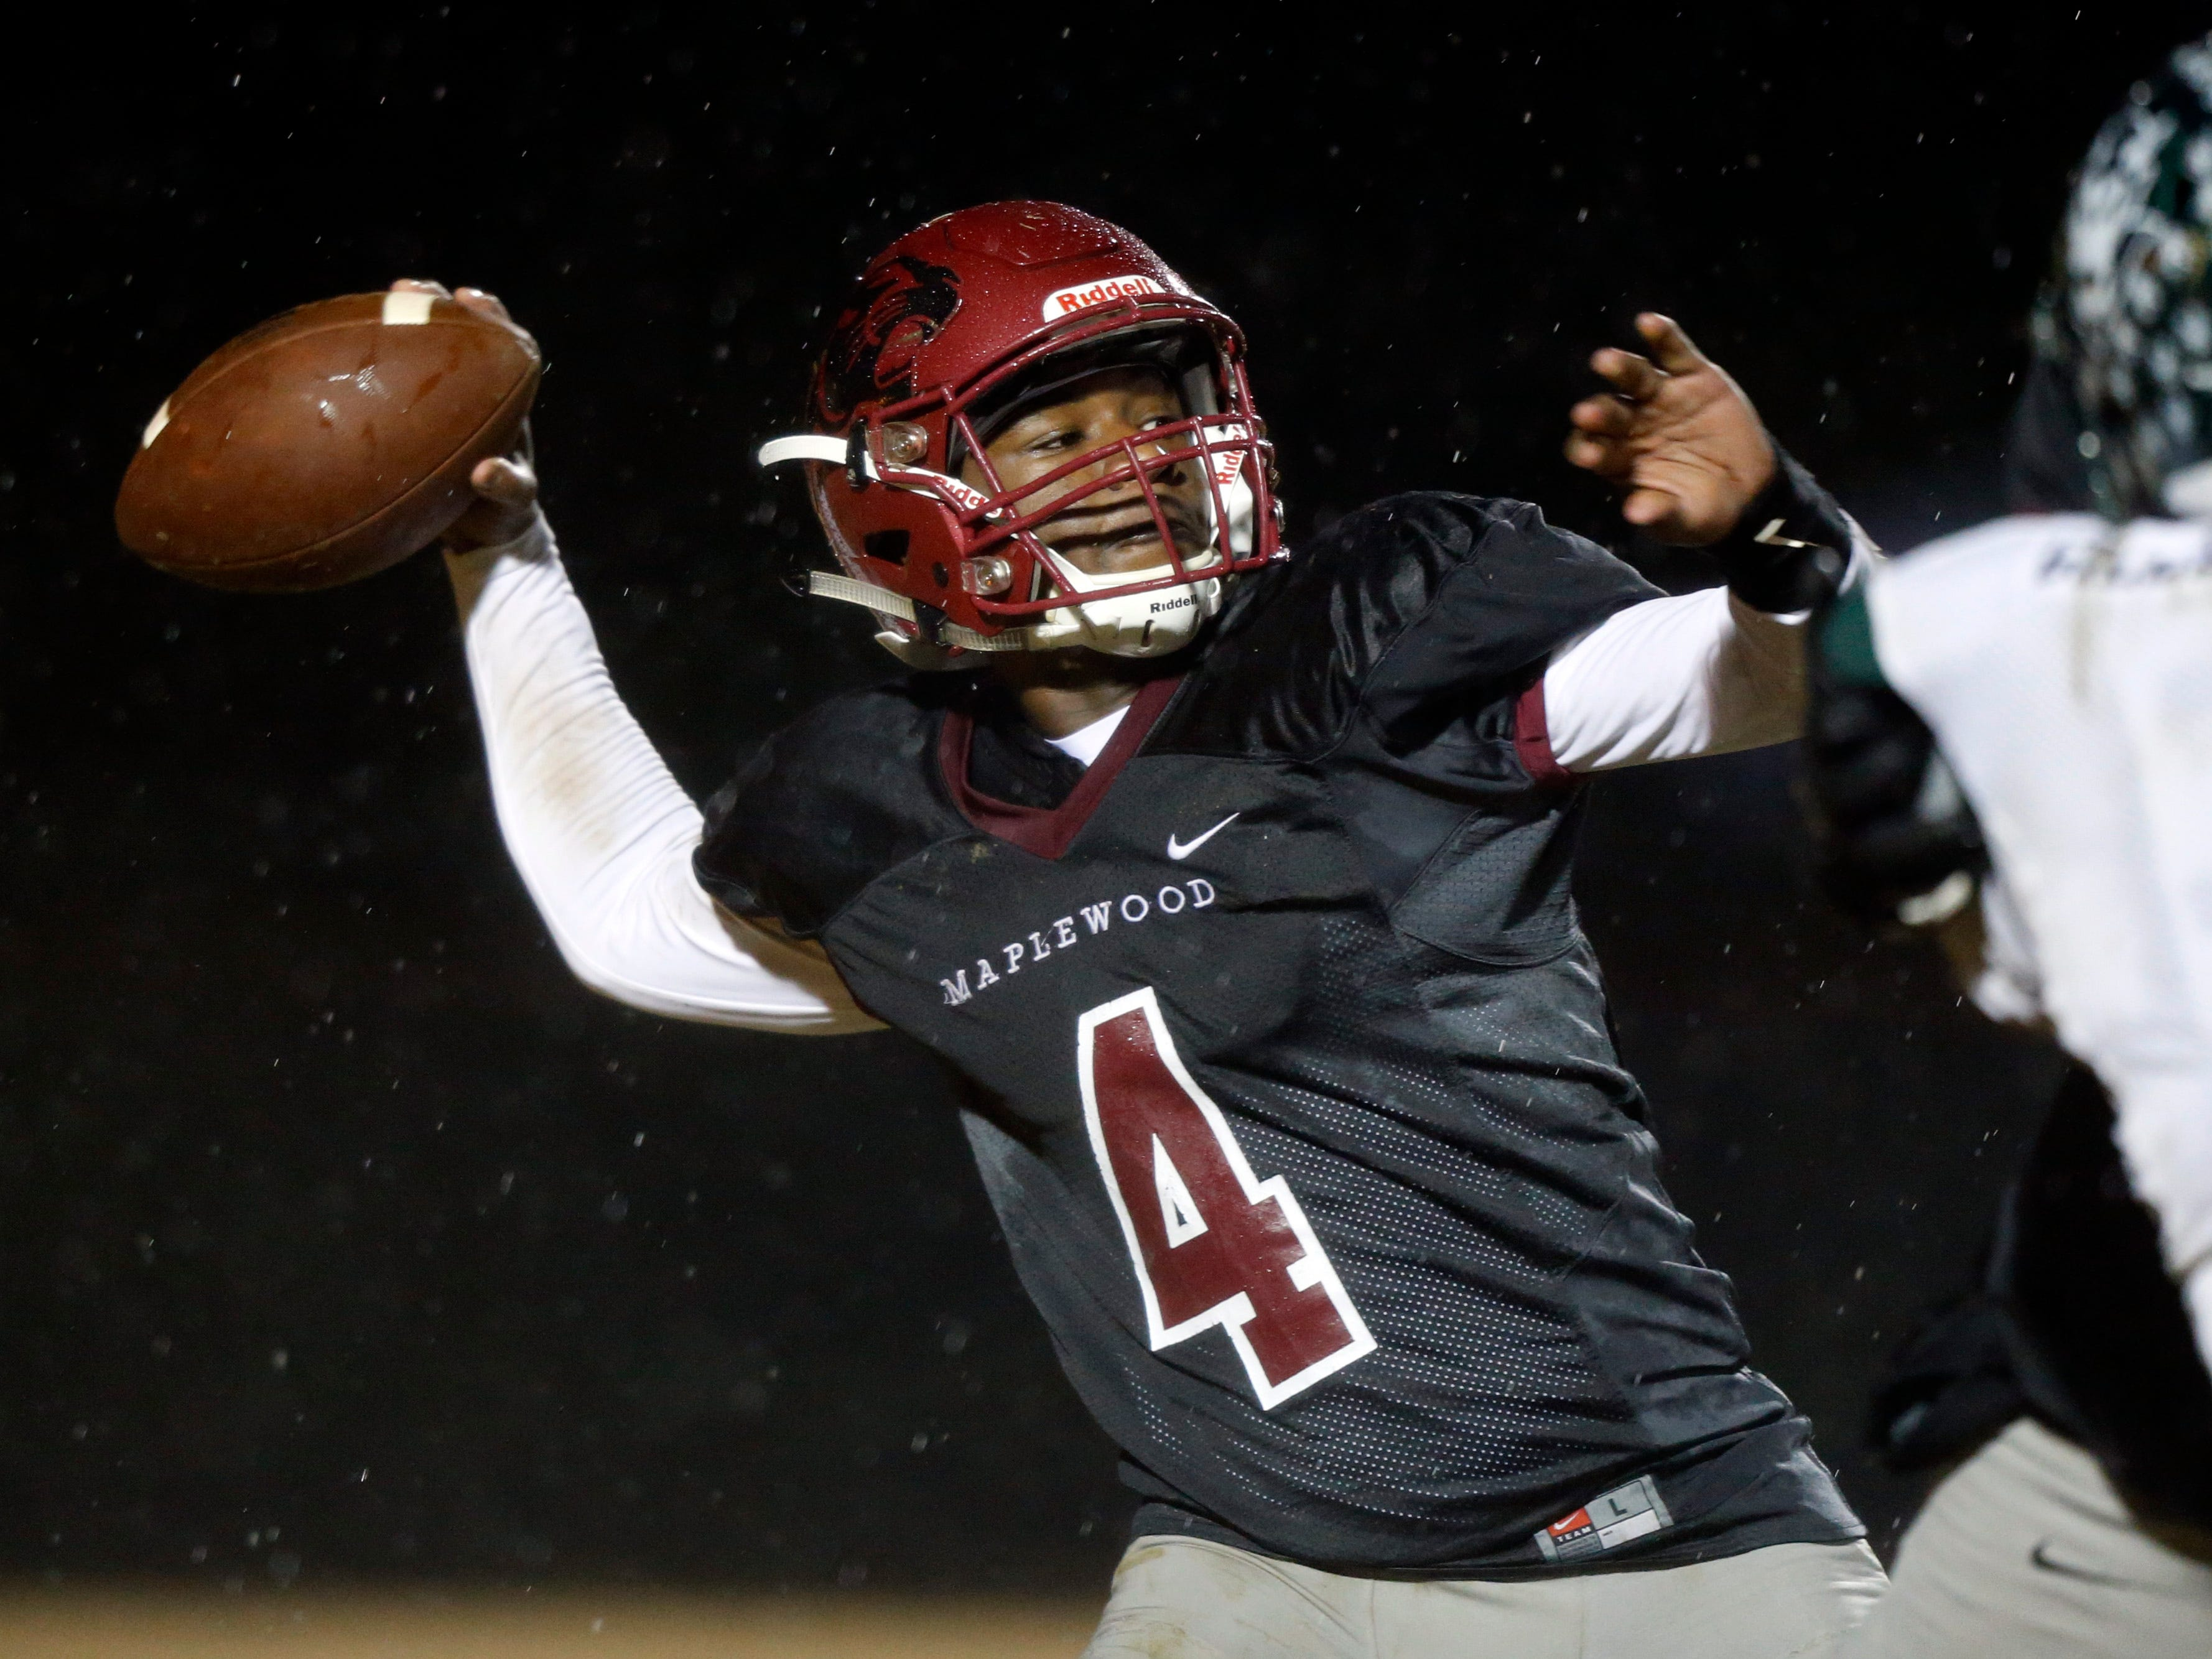 Maplewood's Bobo Hodges throws to a receiver during their game against Greeneville Friday, Nov. 23, 2018, in Nashville, TN.